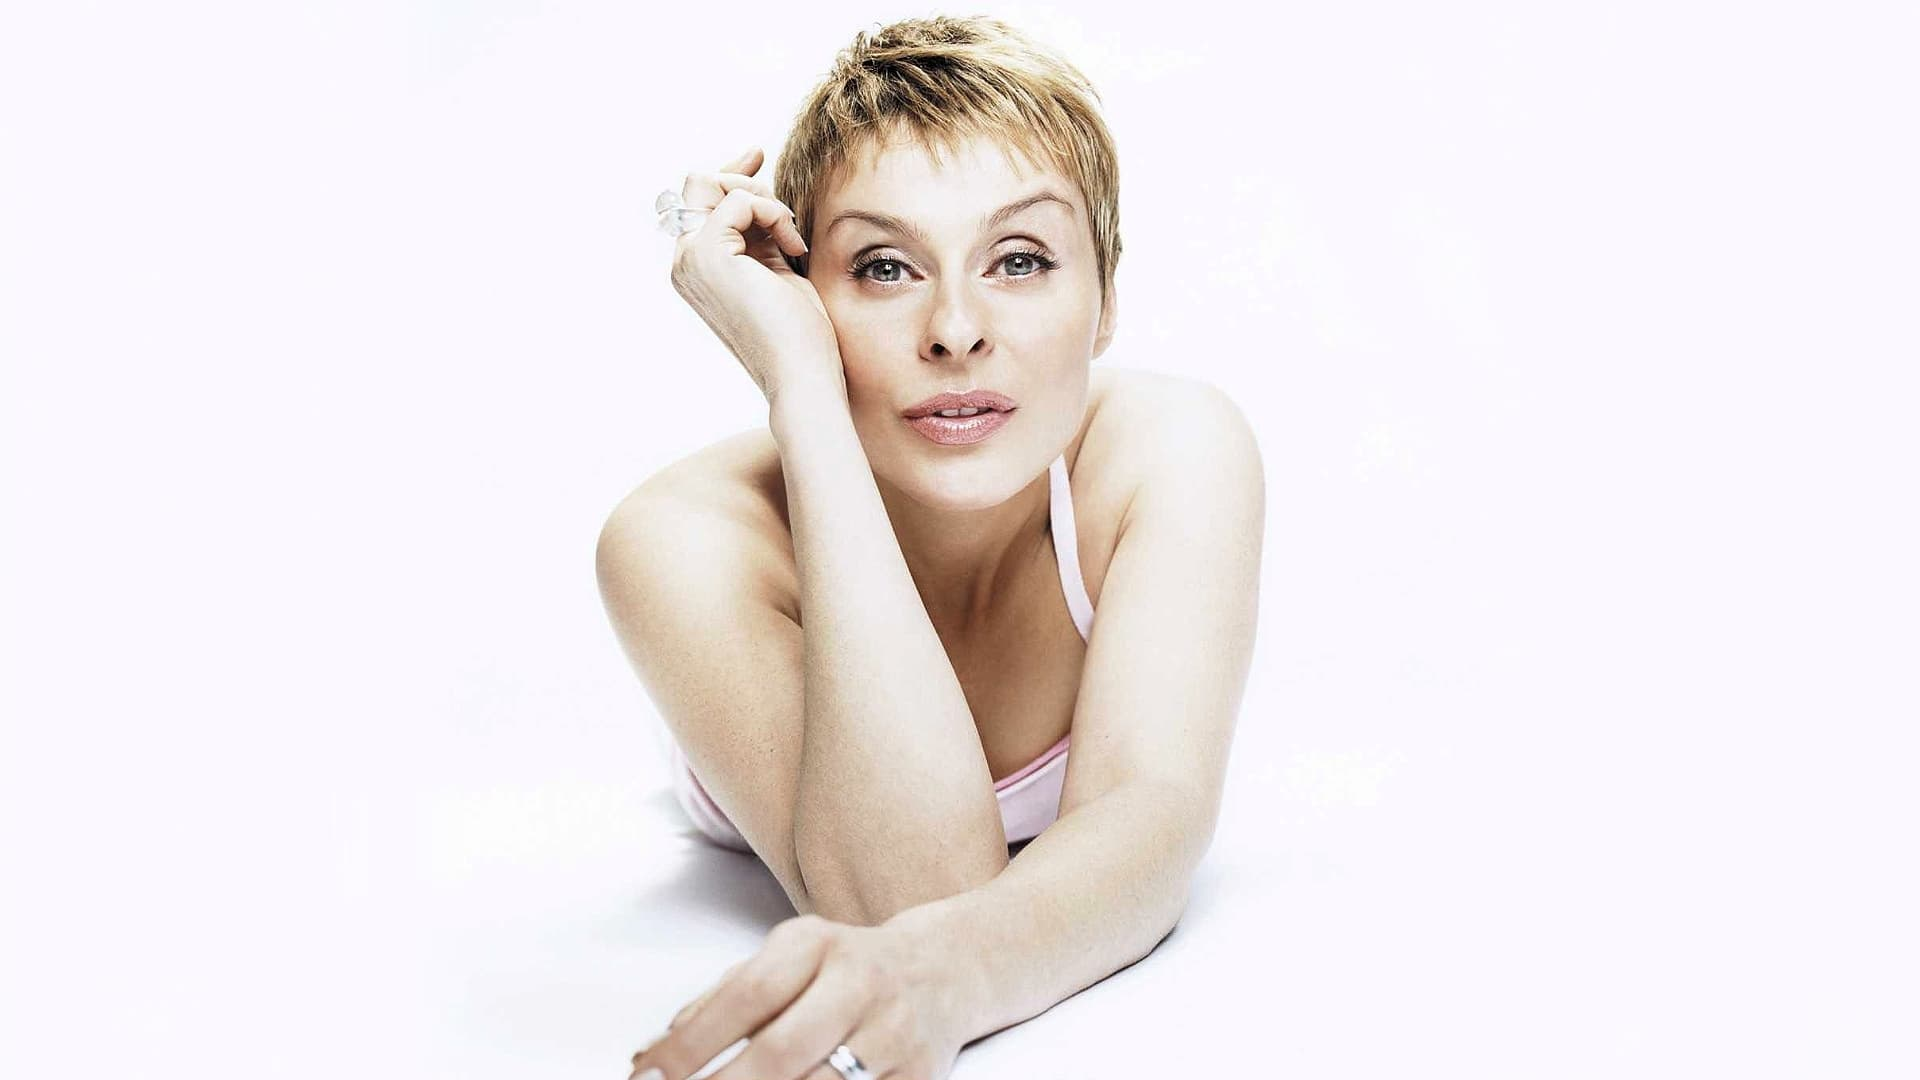 Lisa stansfield video naked #4